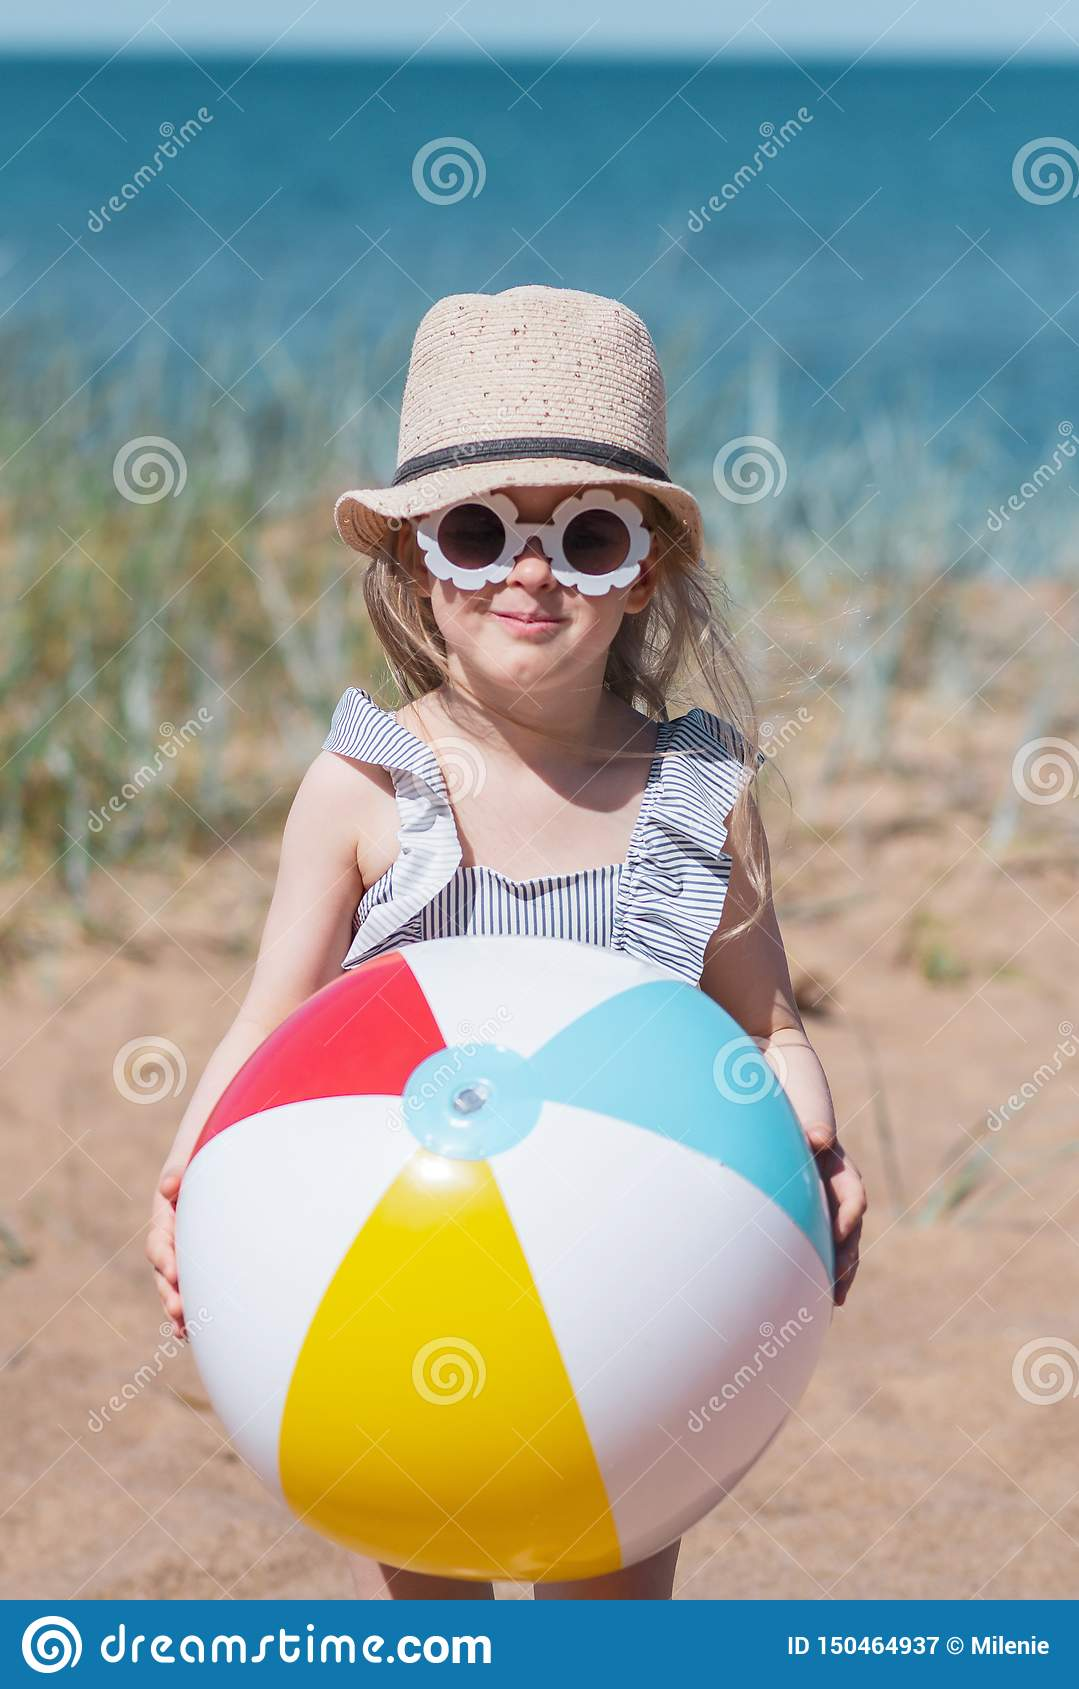 Little girl in hat playing on beach with ball, sunny summer day